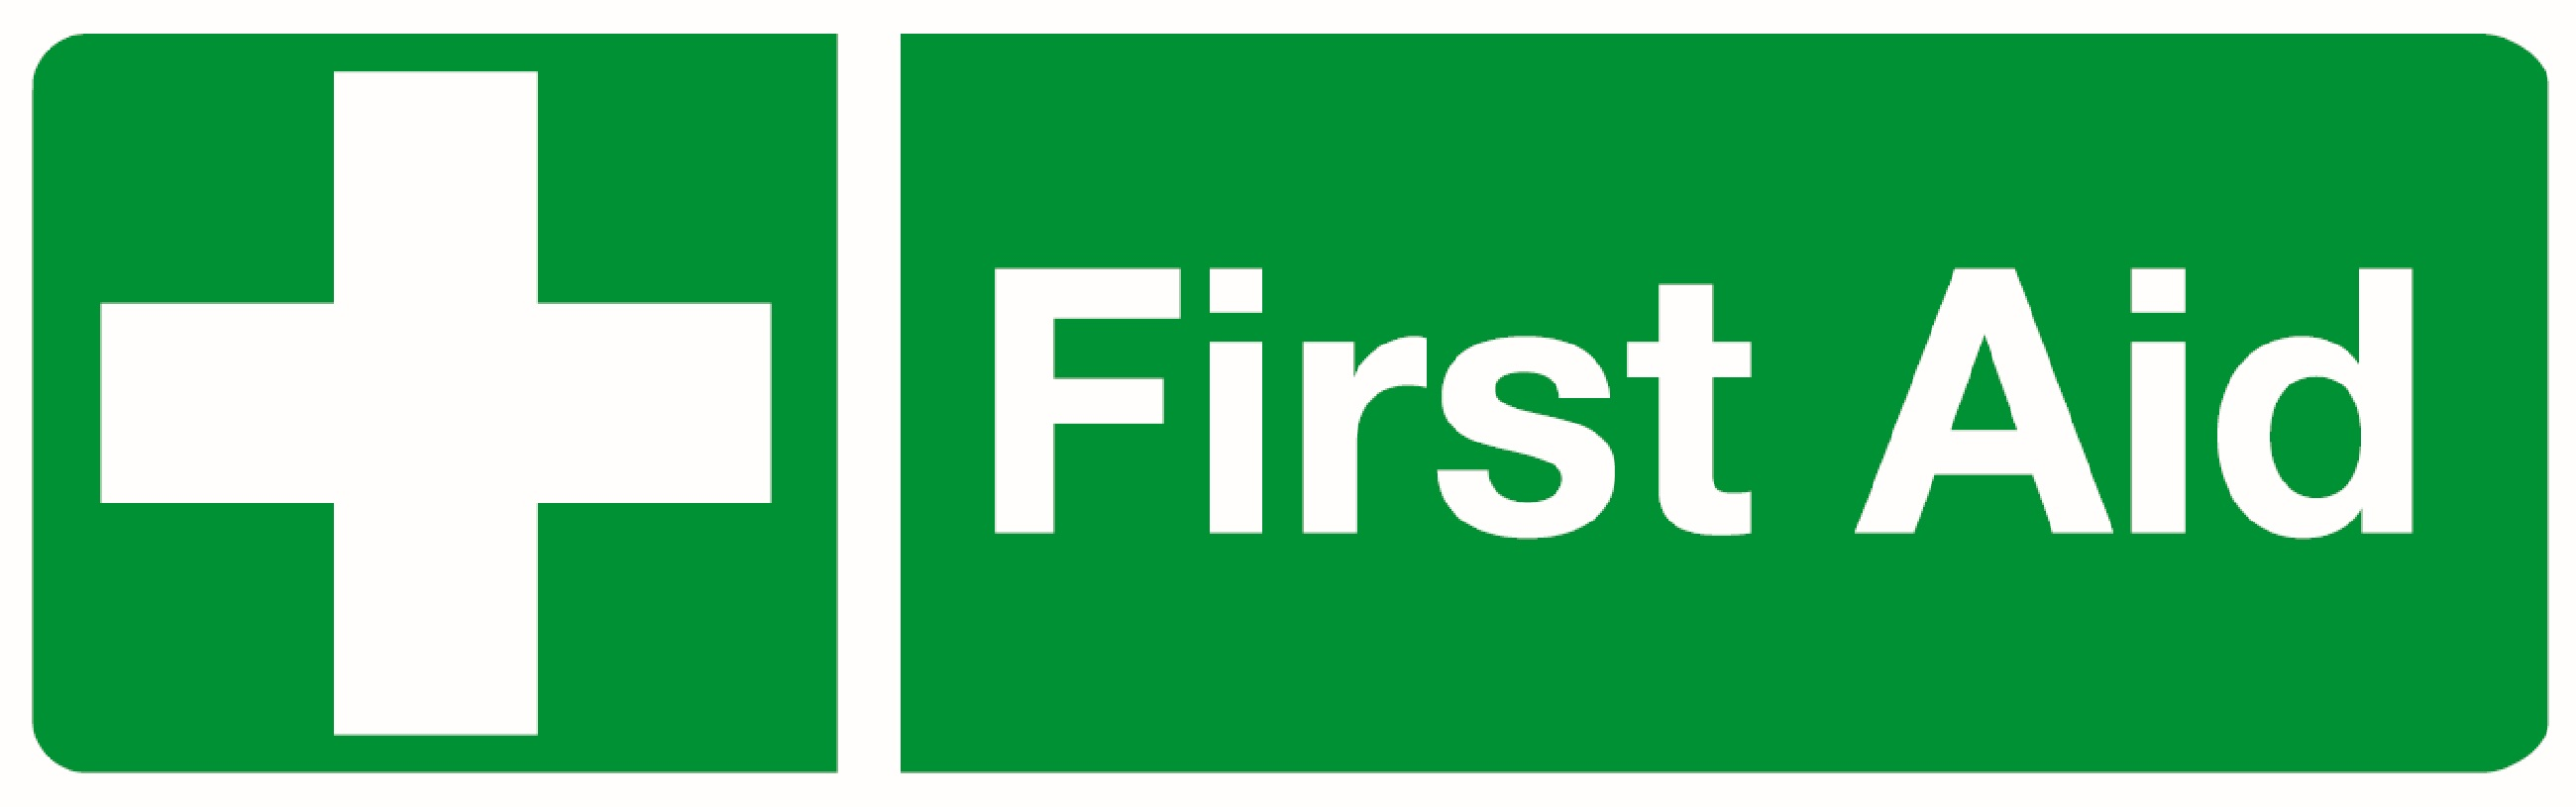 Firstaidsafetysign